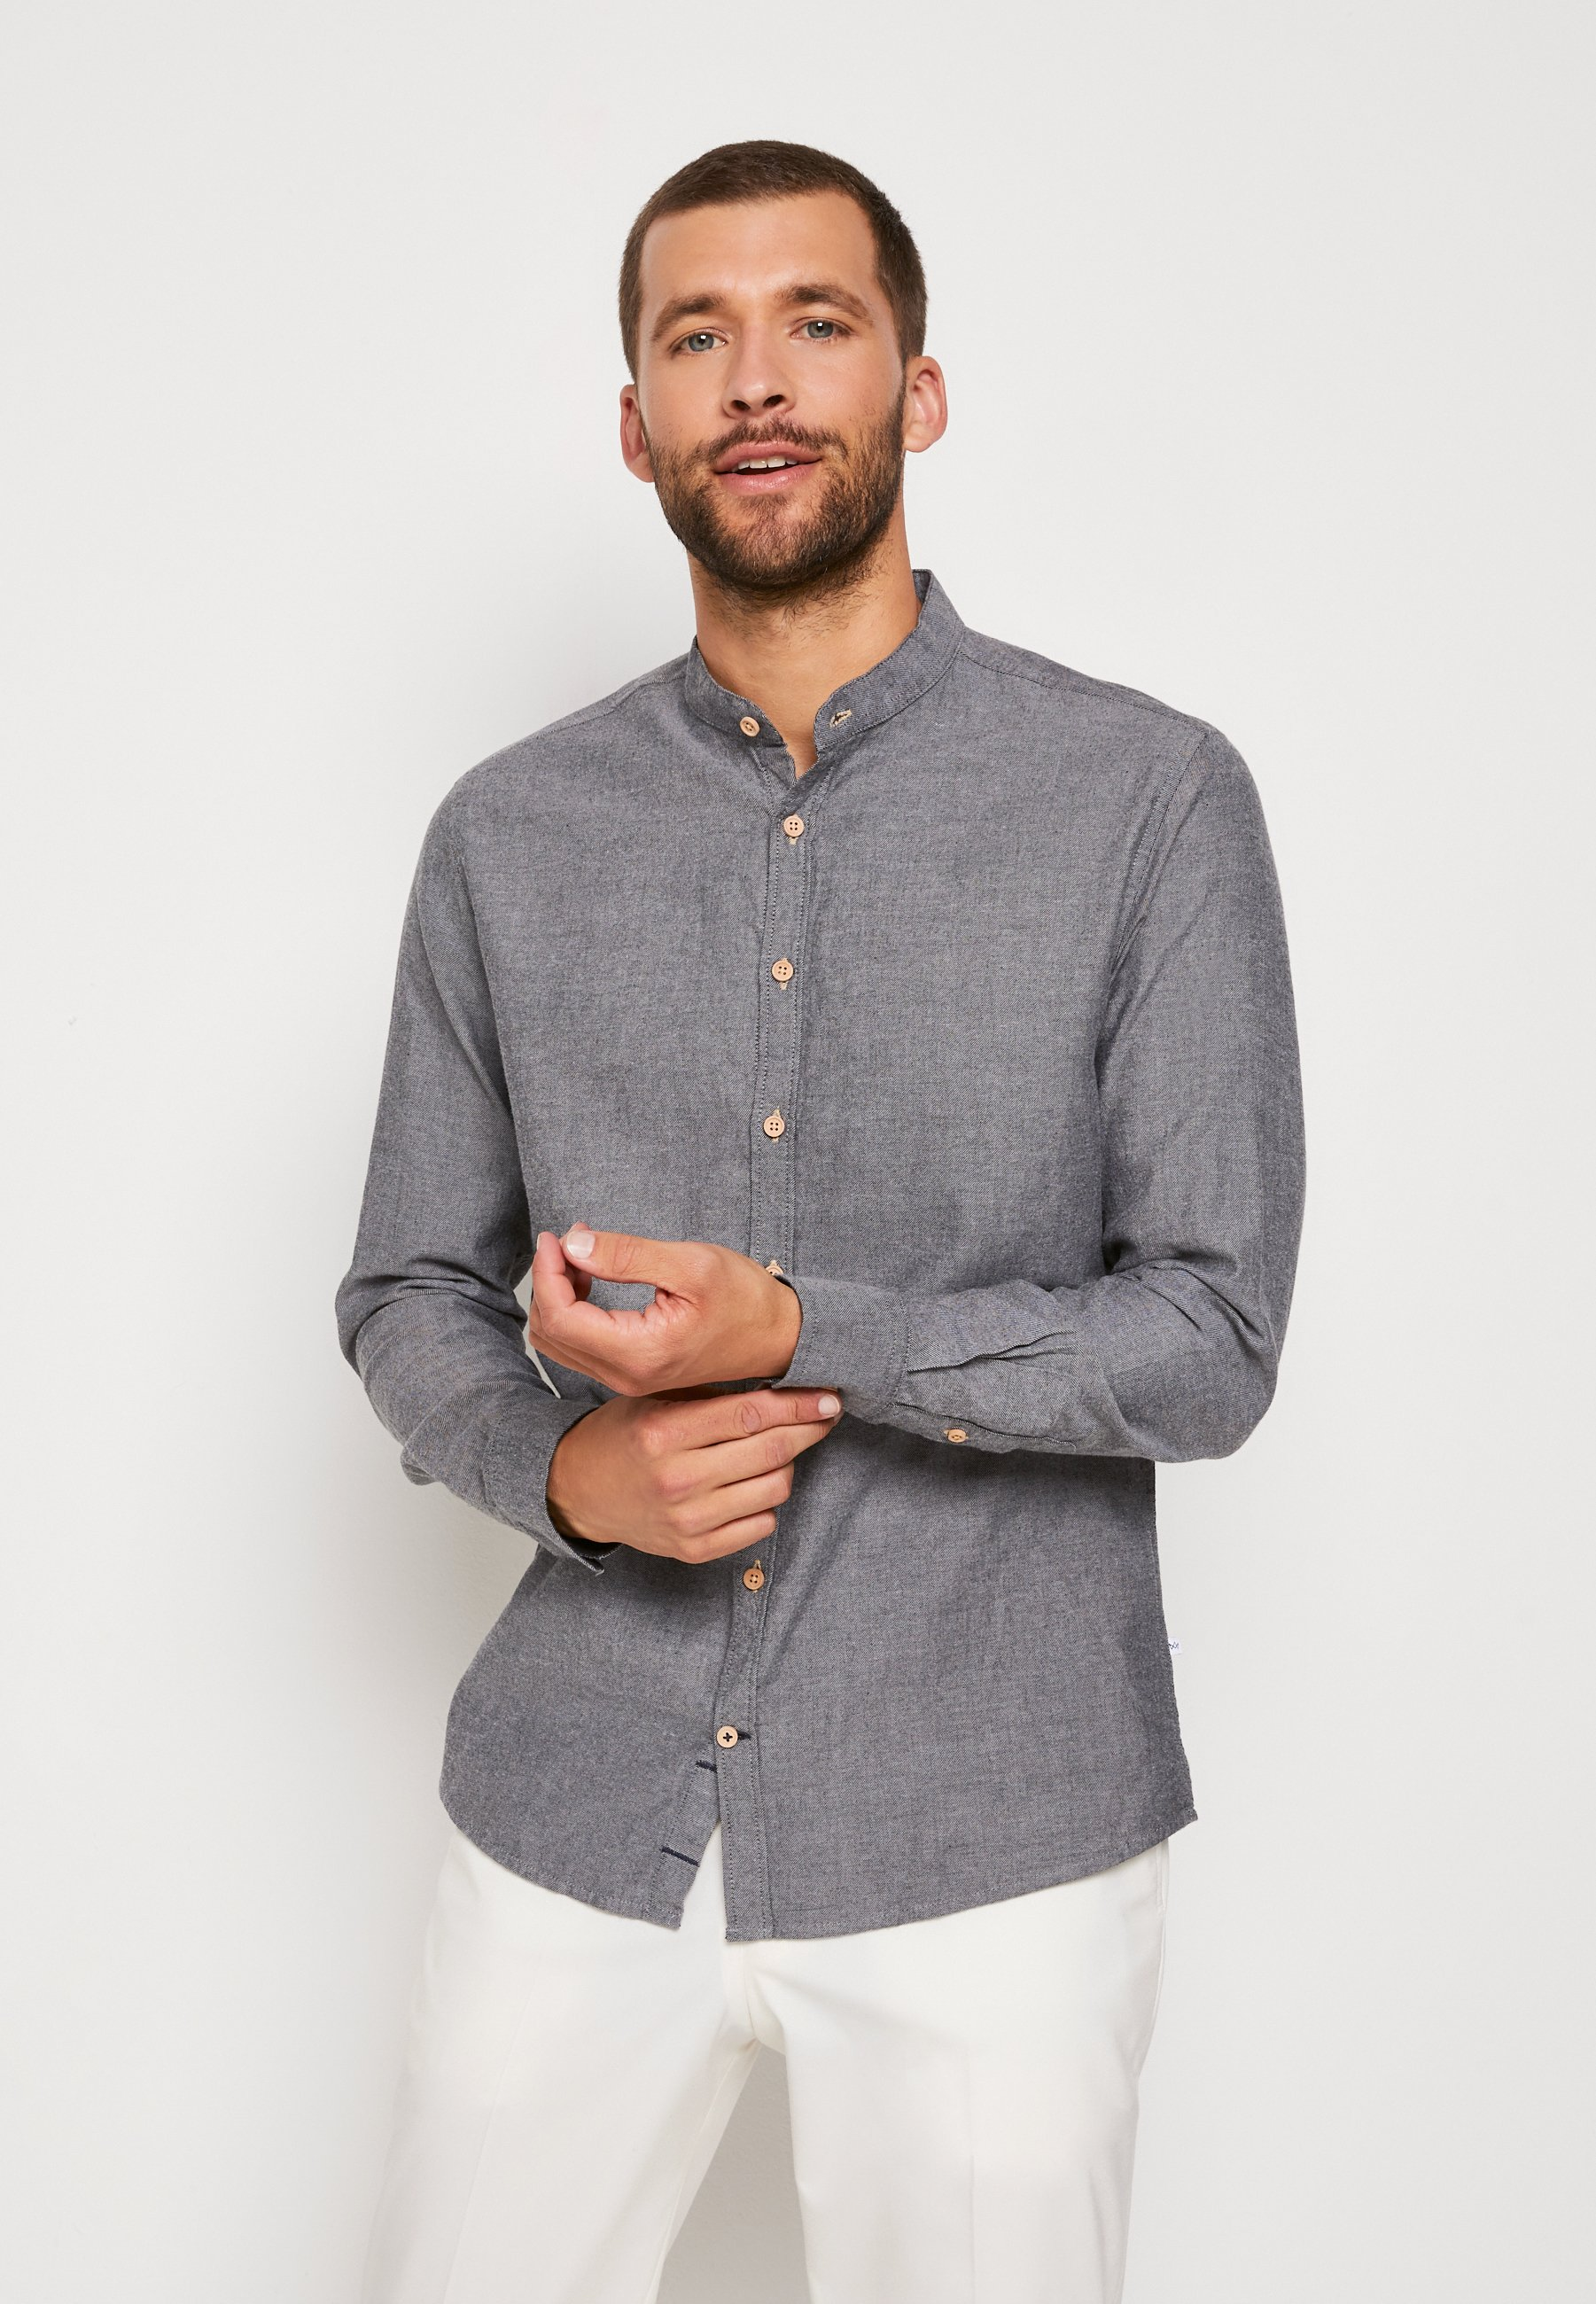 Homme DEAN DIEGO - Chemise